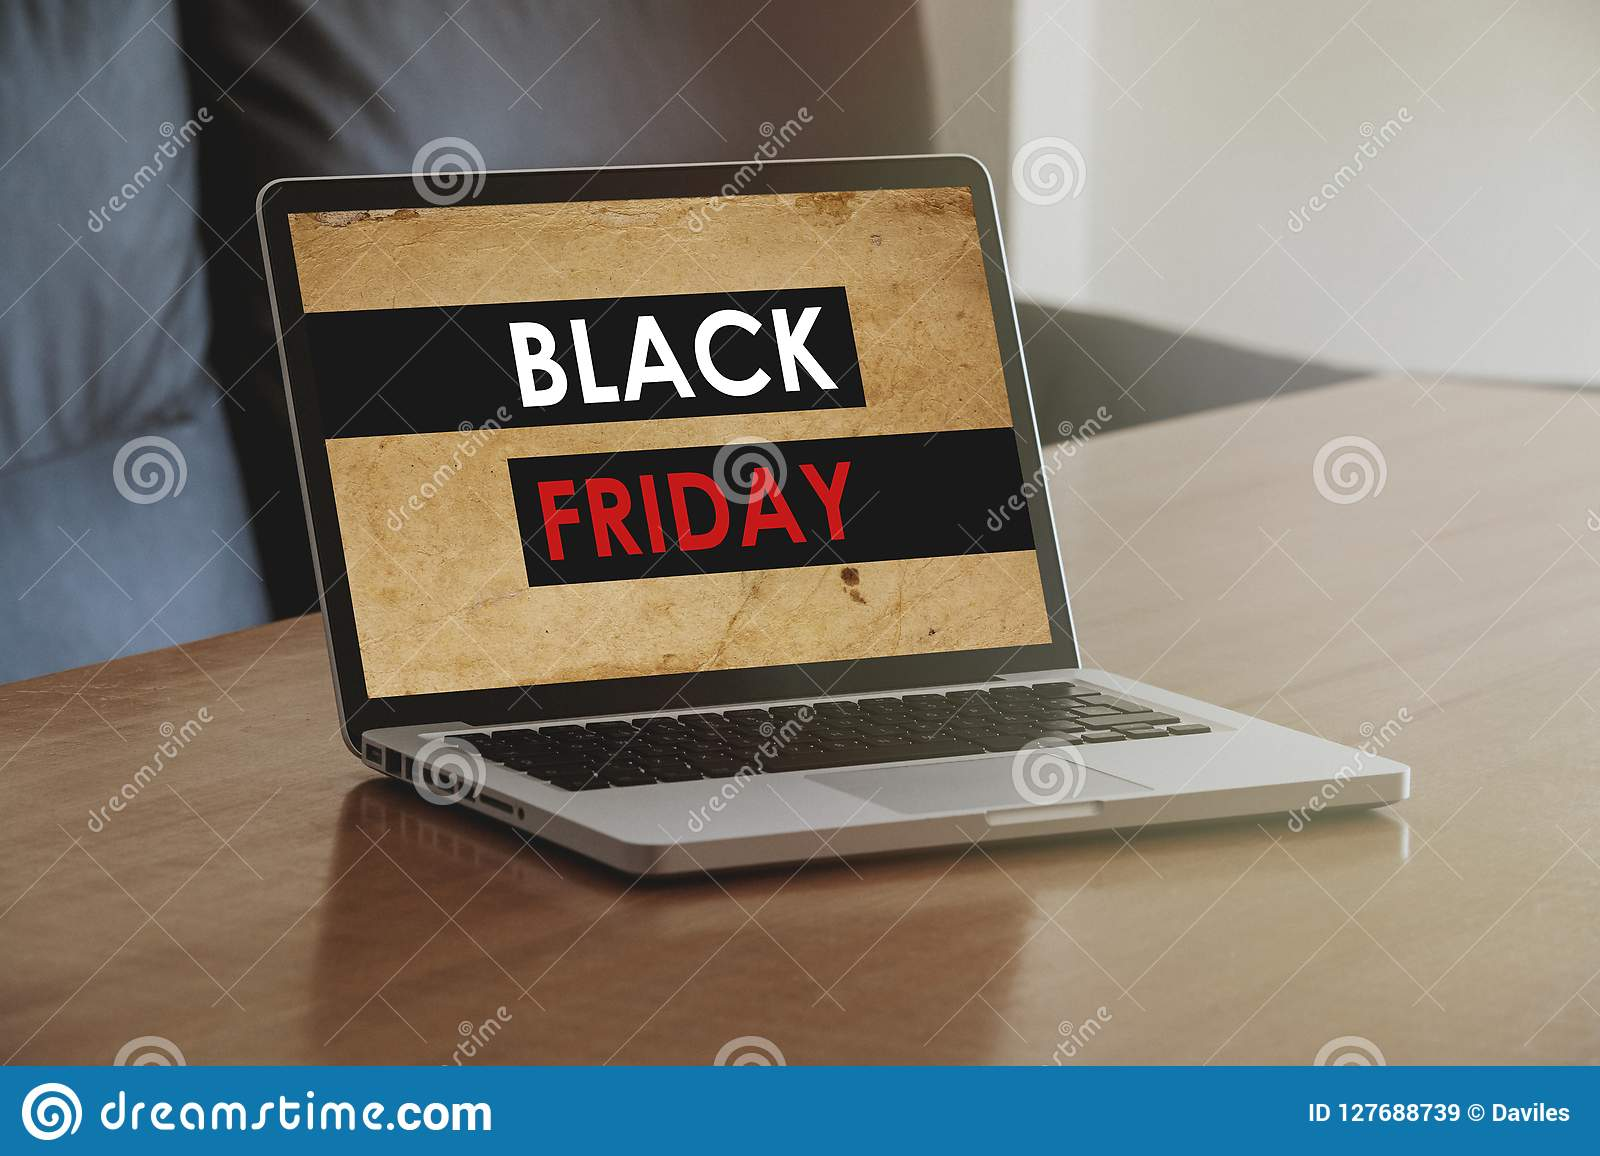 buy online 9d87d e8eef Laptop With Black Friday Shopping Website In The Screen, On ...